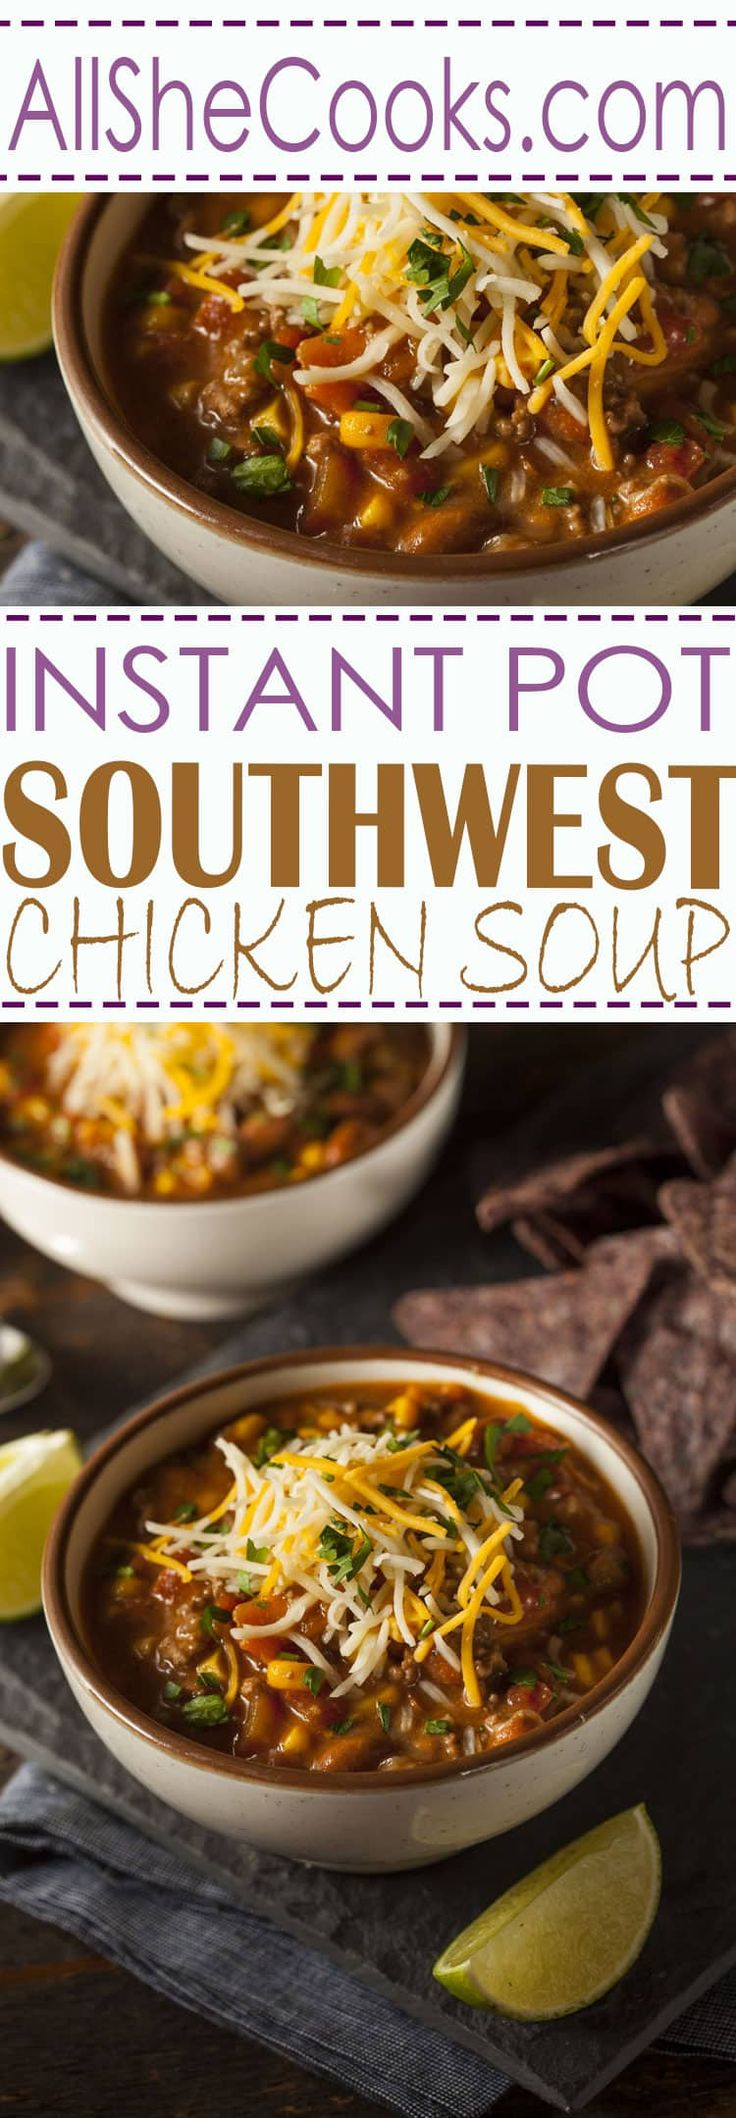 Instant Pot Southwestern Chicken Soup recipe is a healthy chicken soup recipe perfect for healthy easy weeknight dinners and staying on a whole foods healthy diet. #instantpot #chickenrecipes #souprecipes